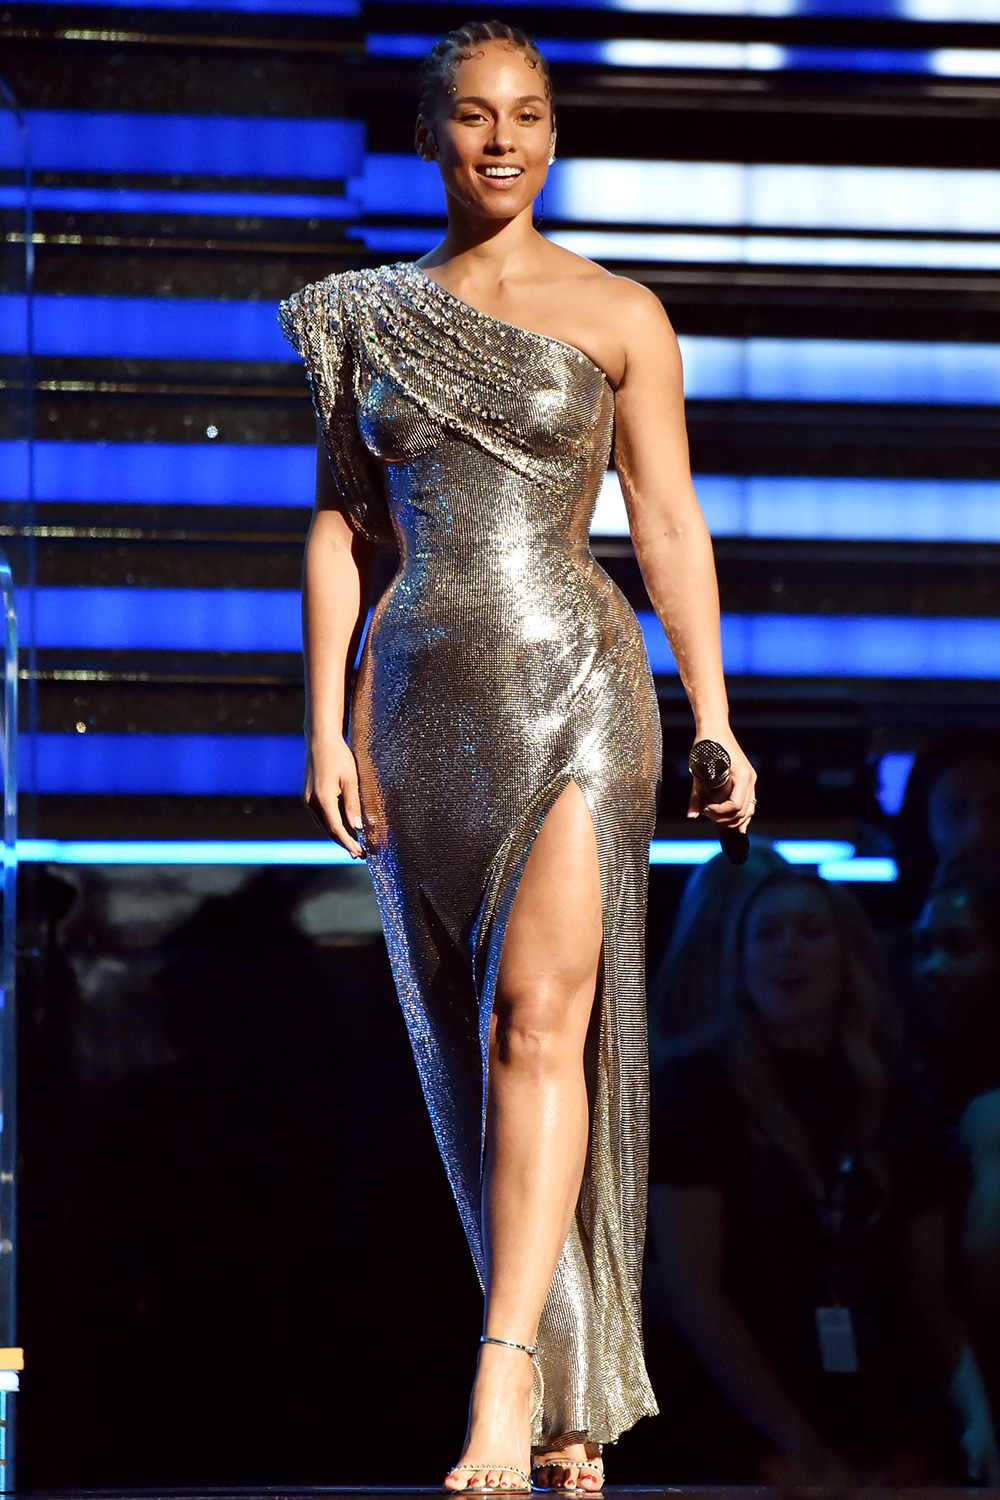 Alicia Keys speaks onstage during the 62nd Annual GRAMMY Awards at STAPLES Center on January 26, 2020 in Los Angeles